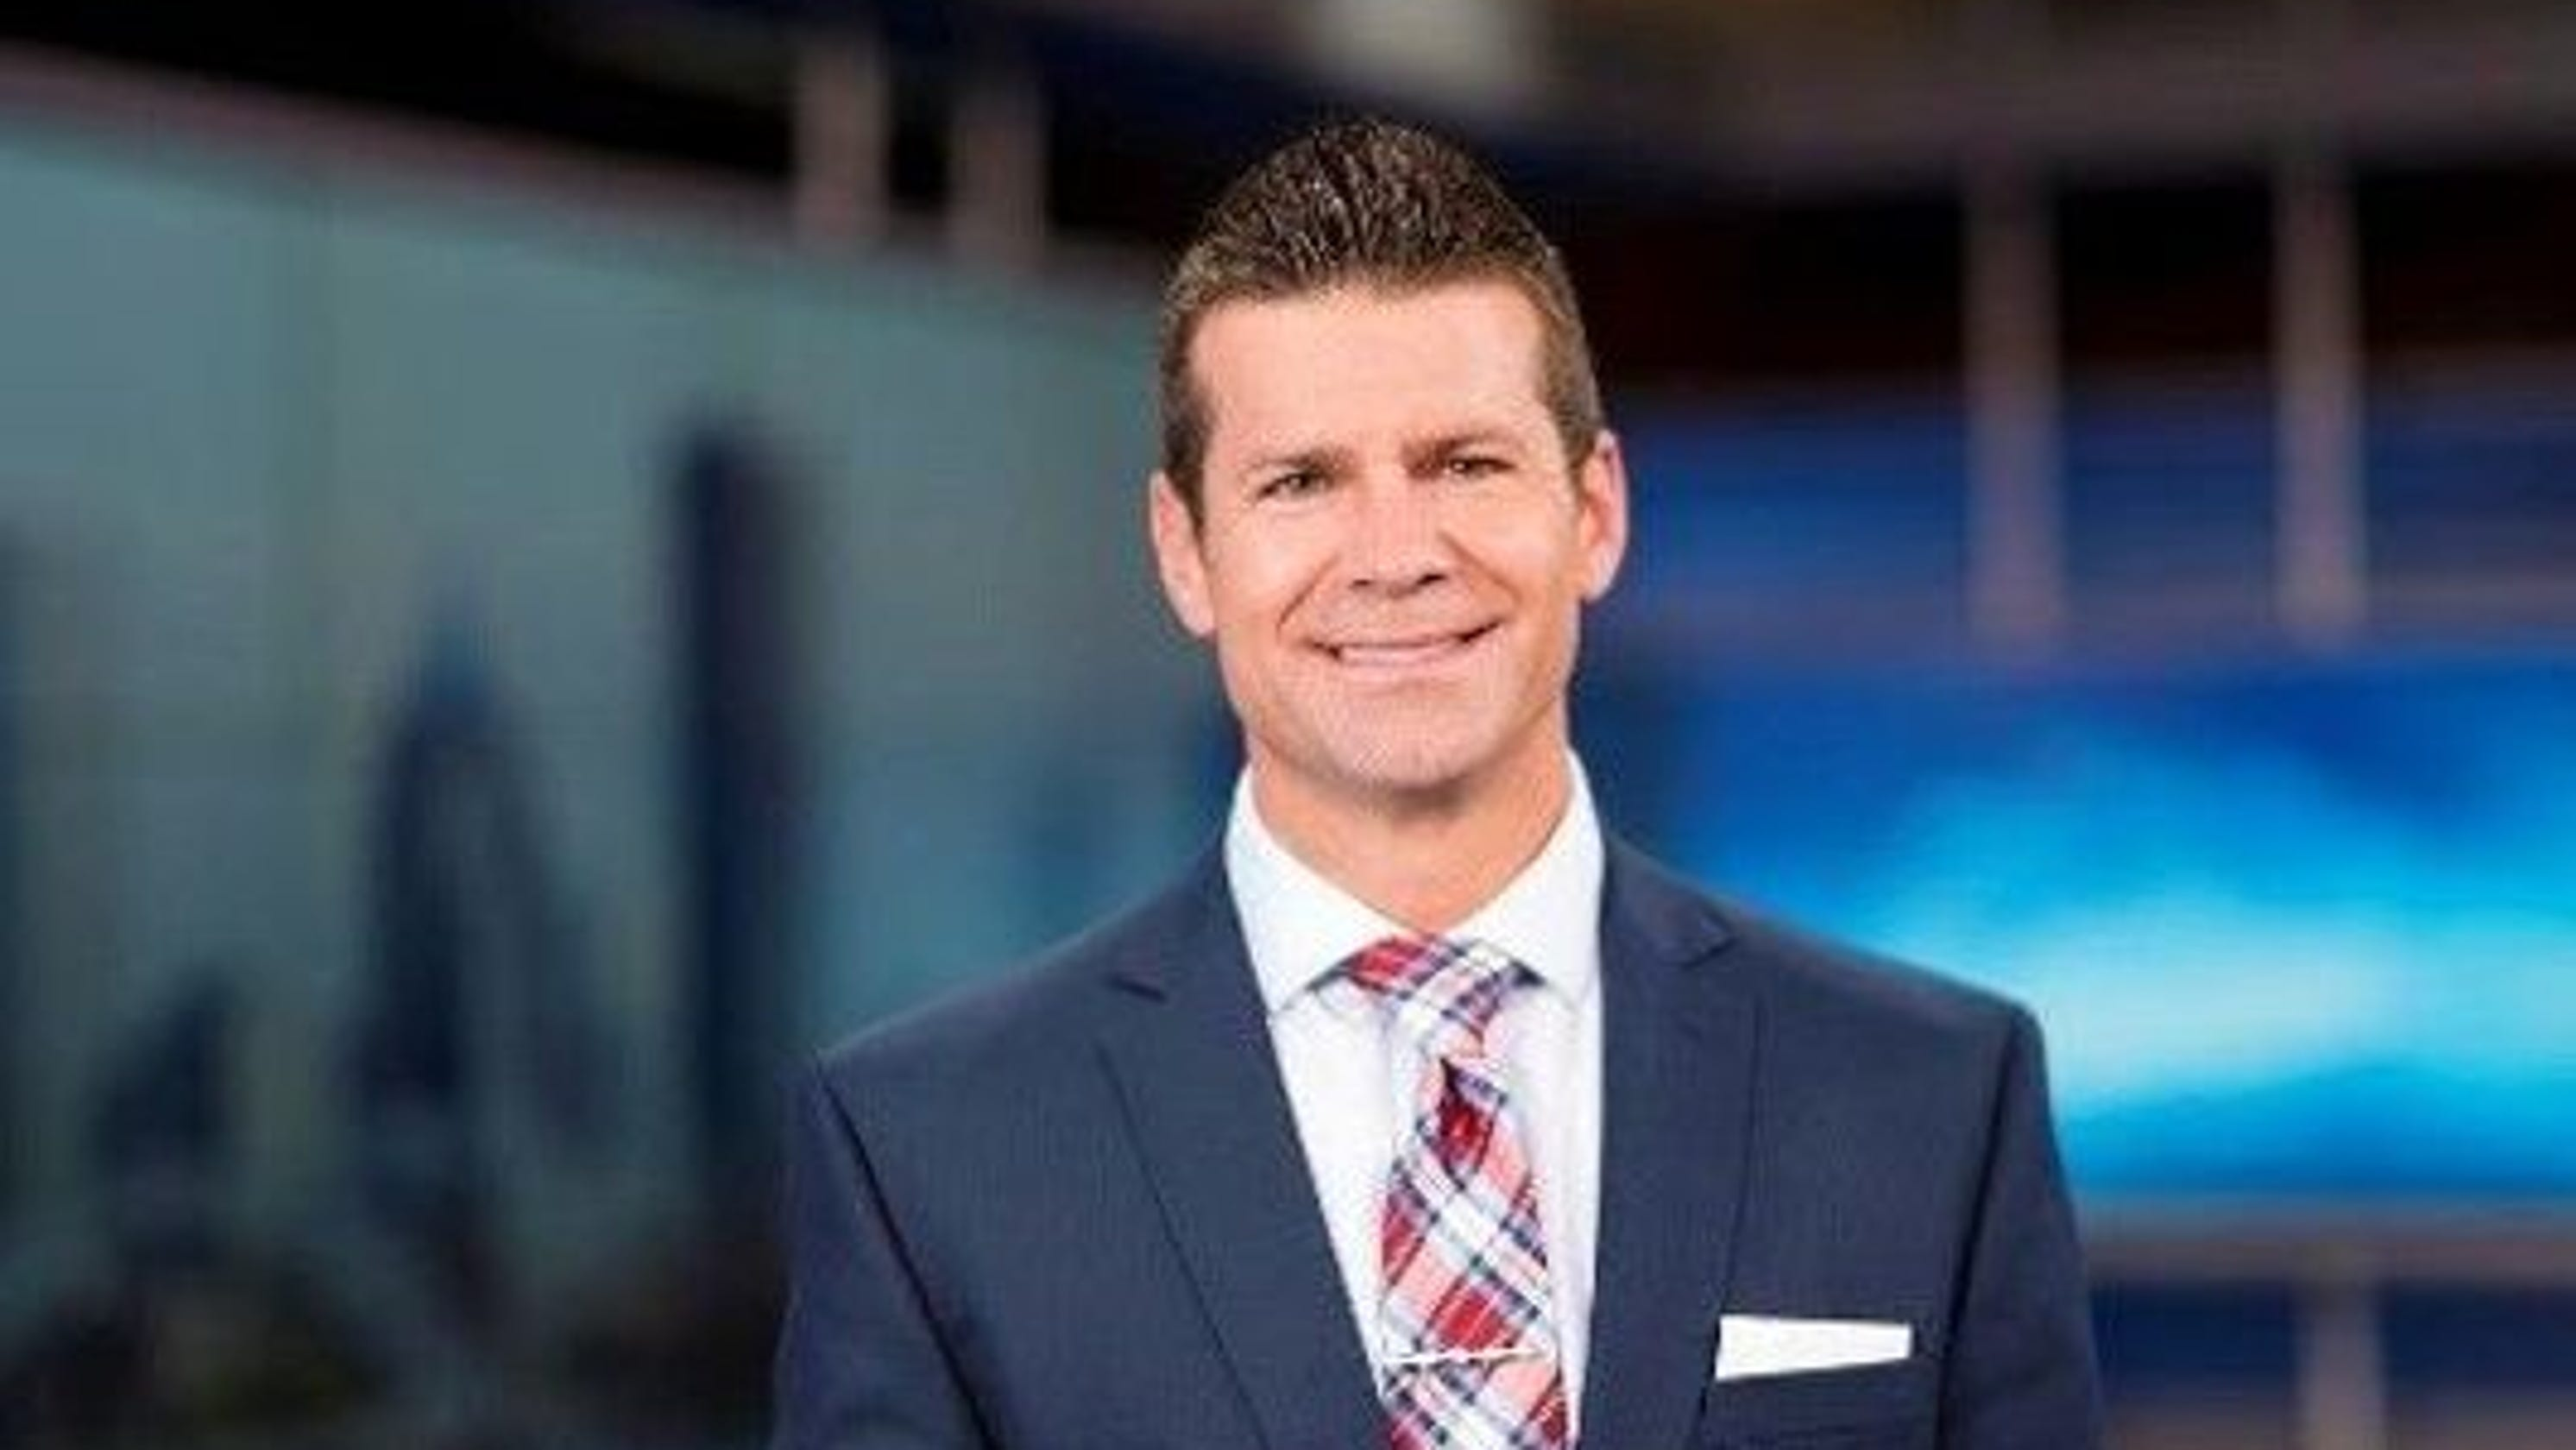 Meteorologist Jeremy Kappell files lawsuit over his firing from WHEC